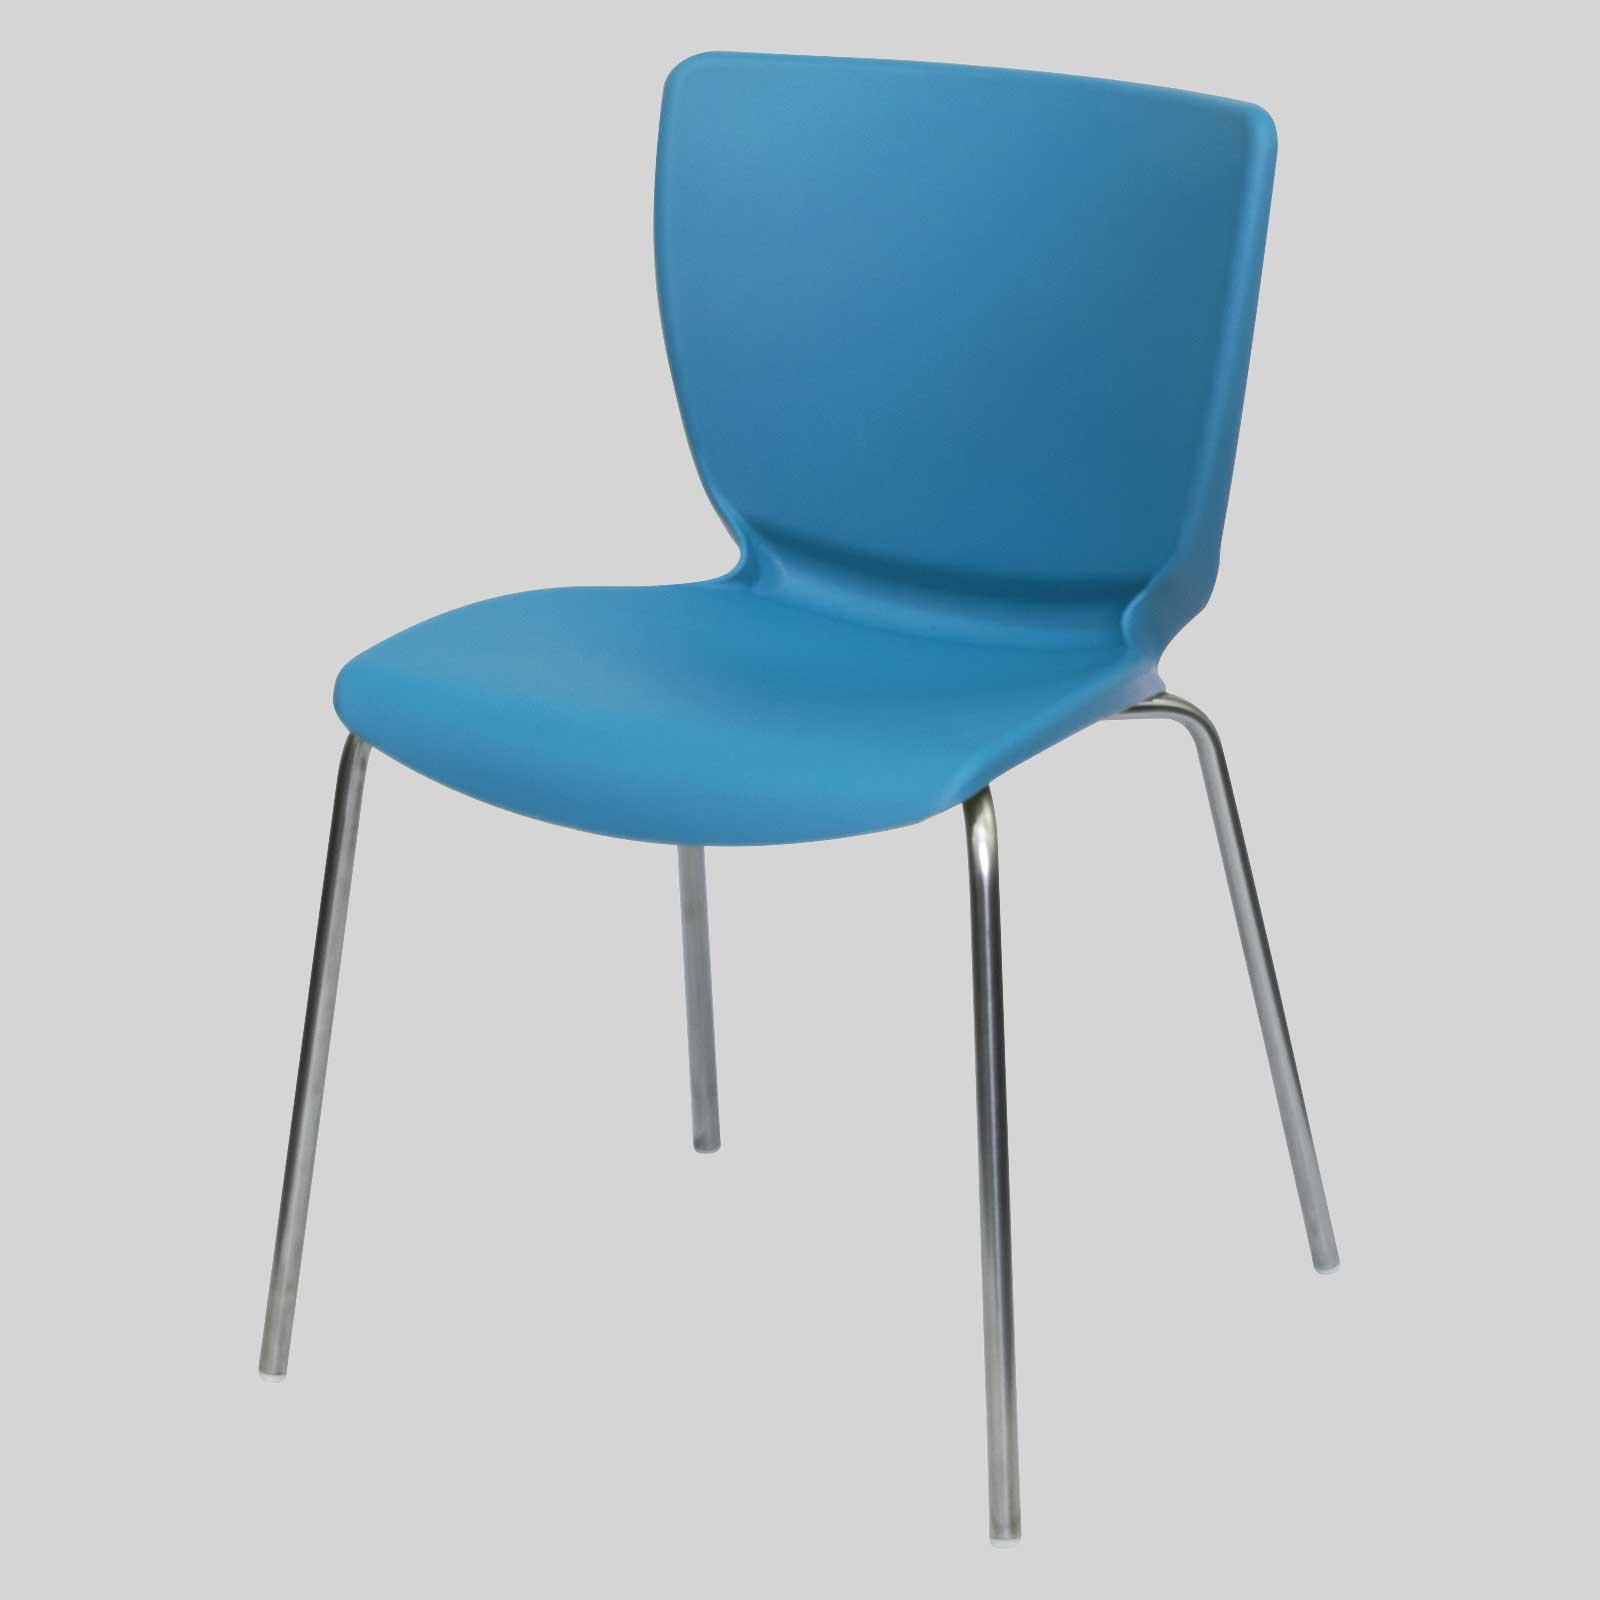 Commercial chairs for hospitality metro concept for Commercial furniture